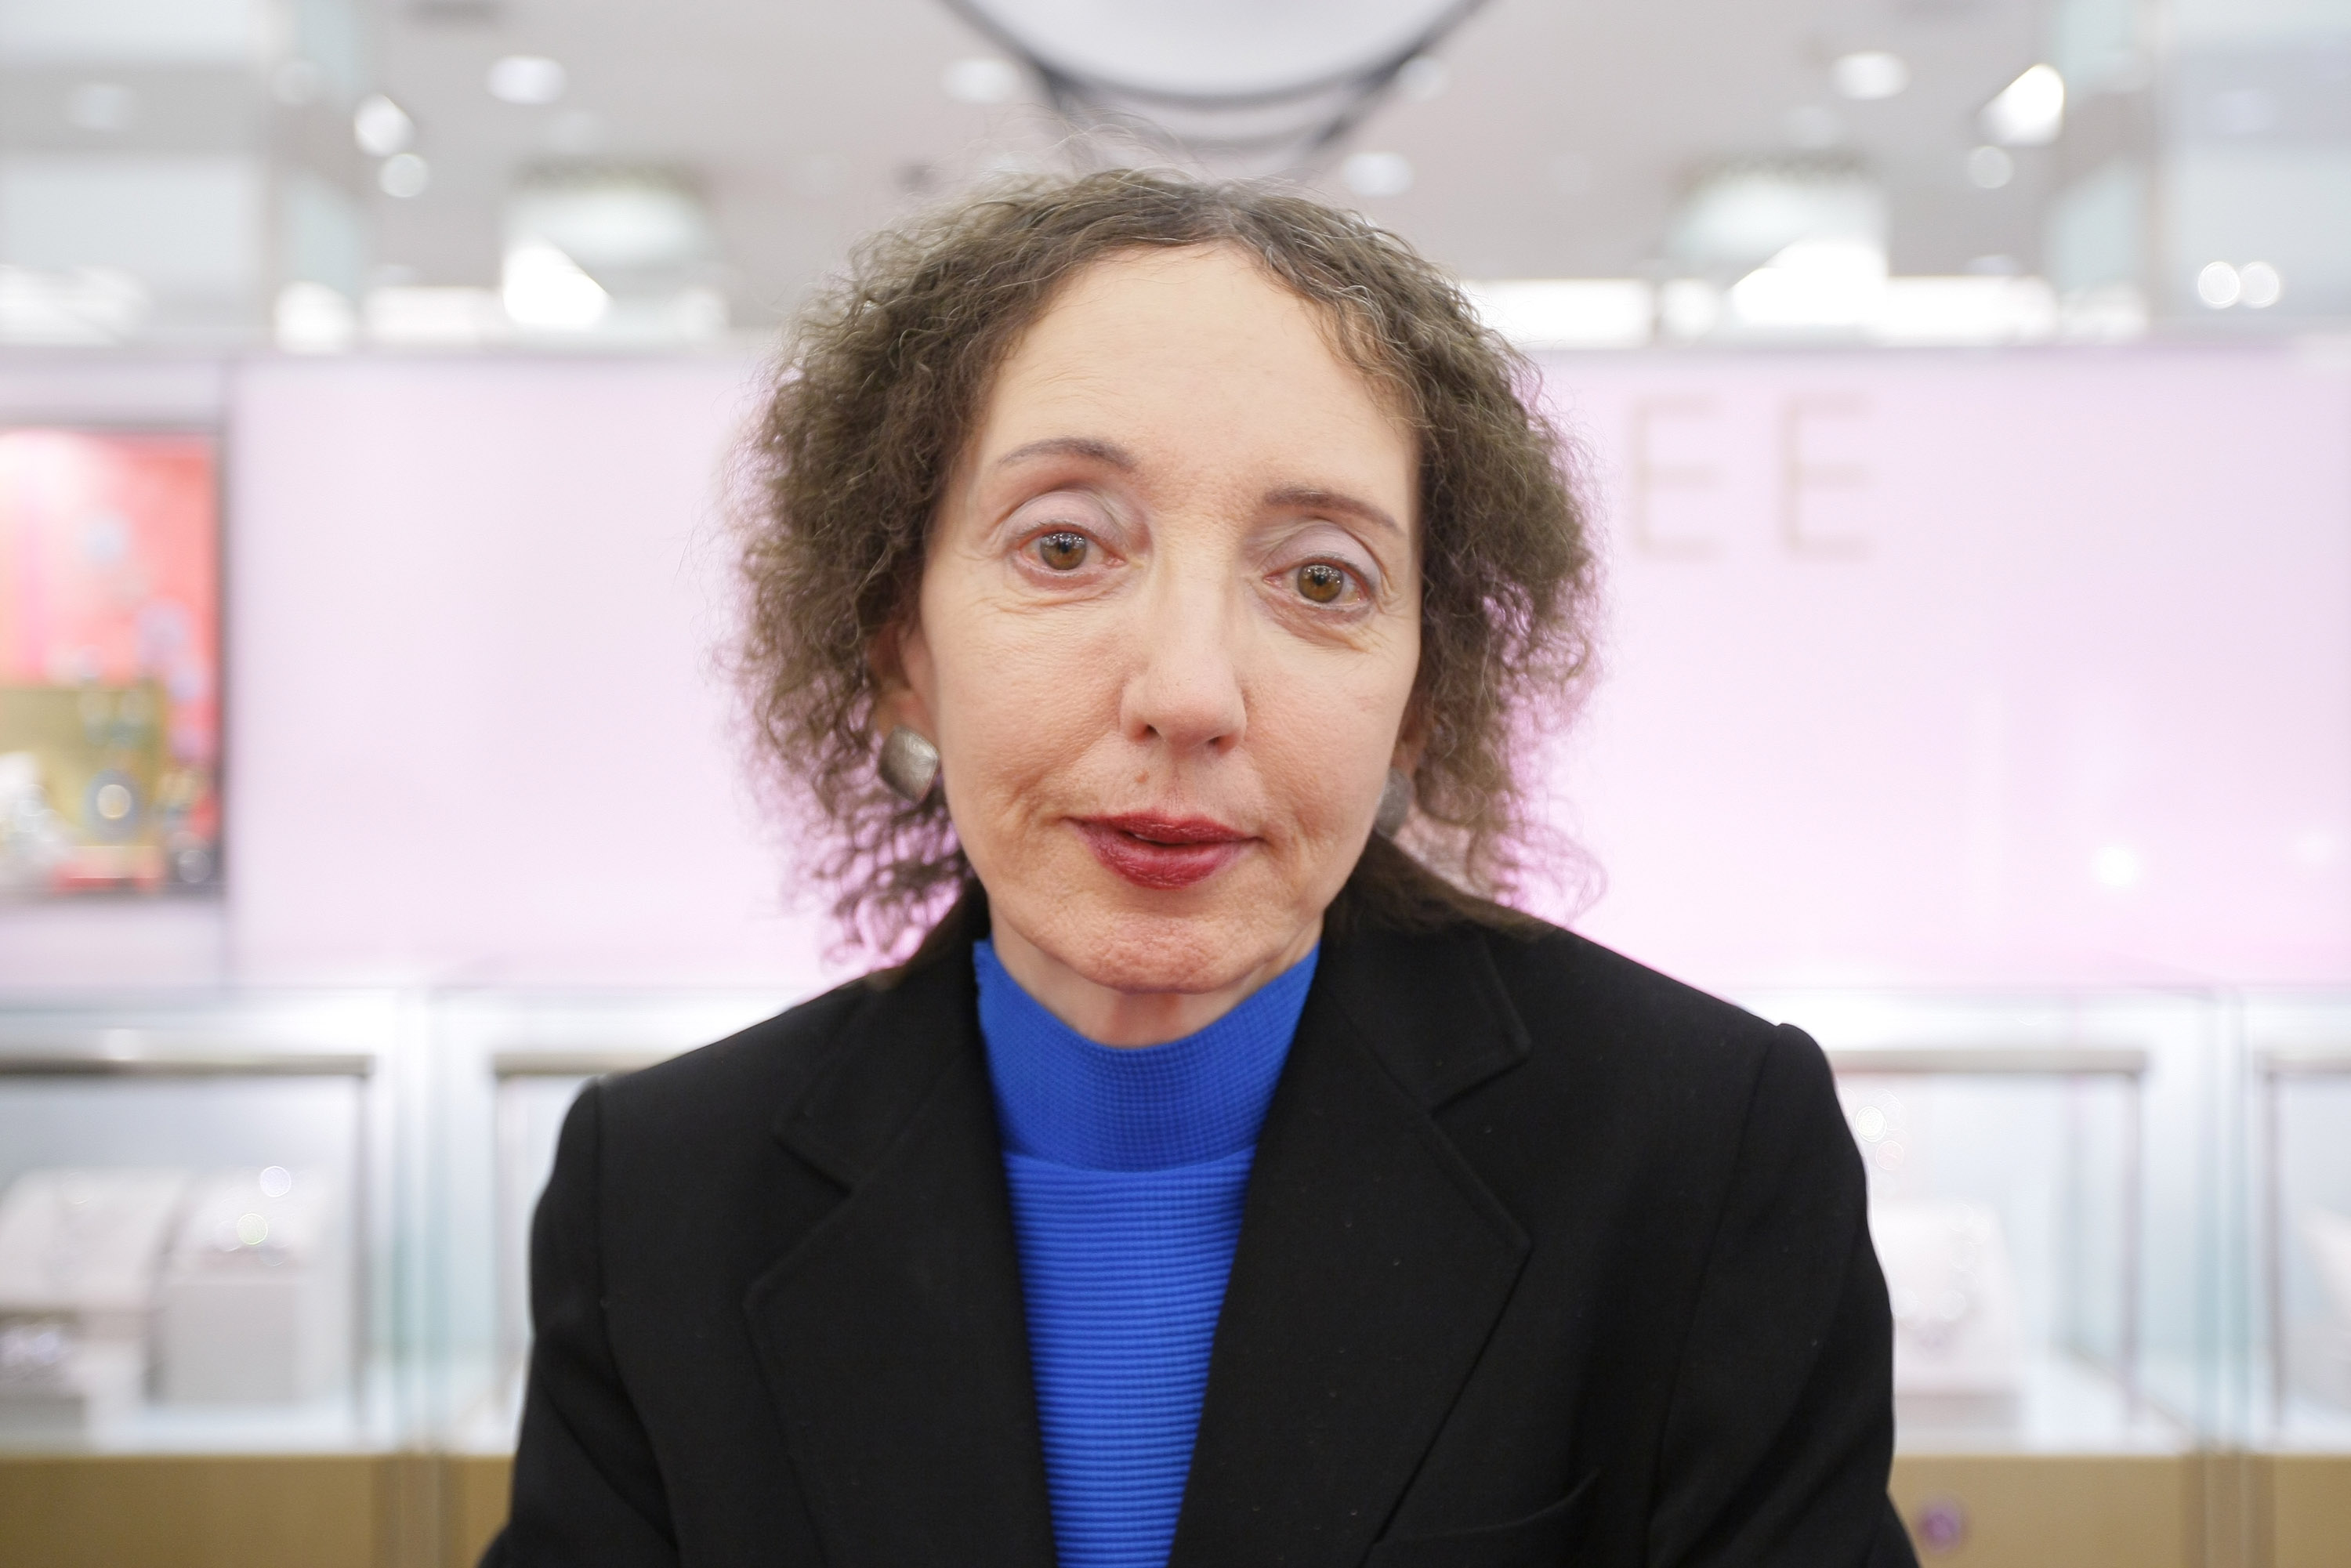 joyce carol oates s four summers An introduction to four summers by joyce carol oates learn about the book and the historical context in which it was written.